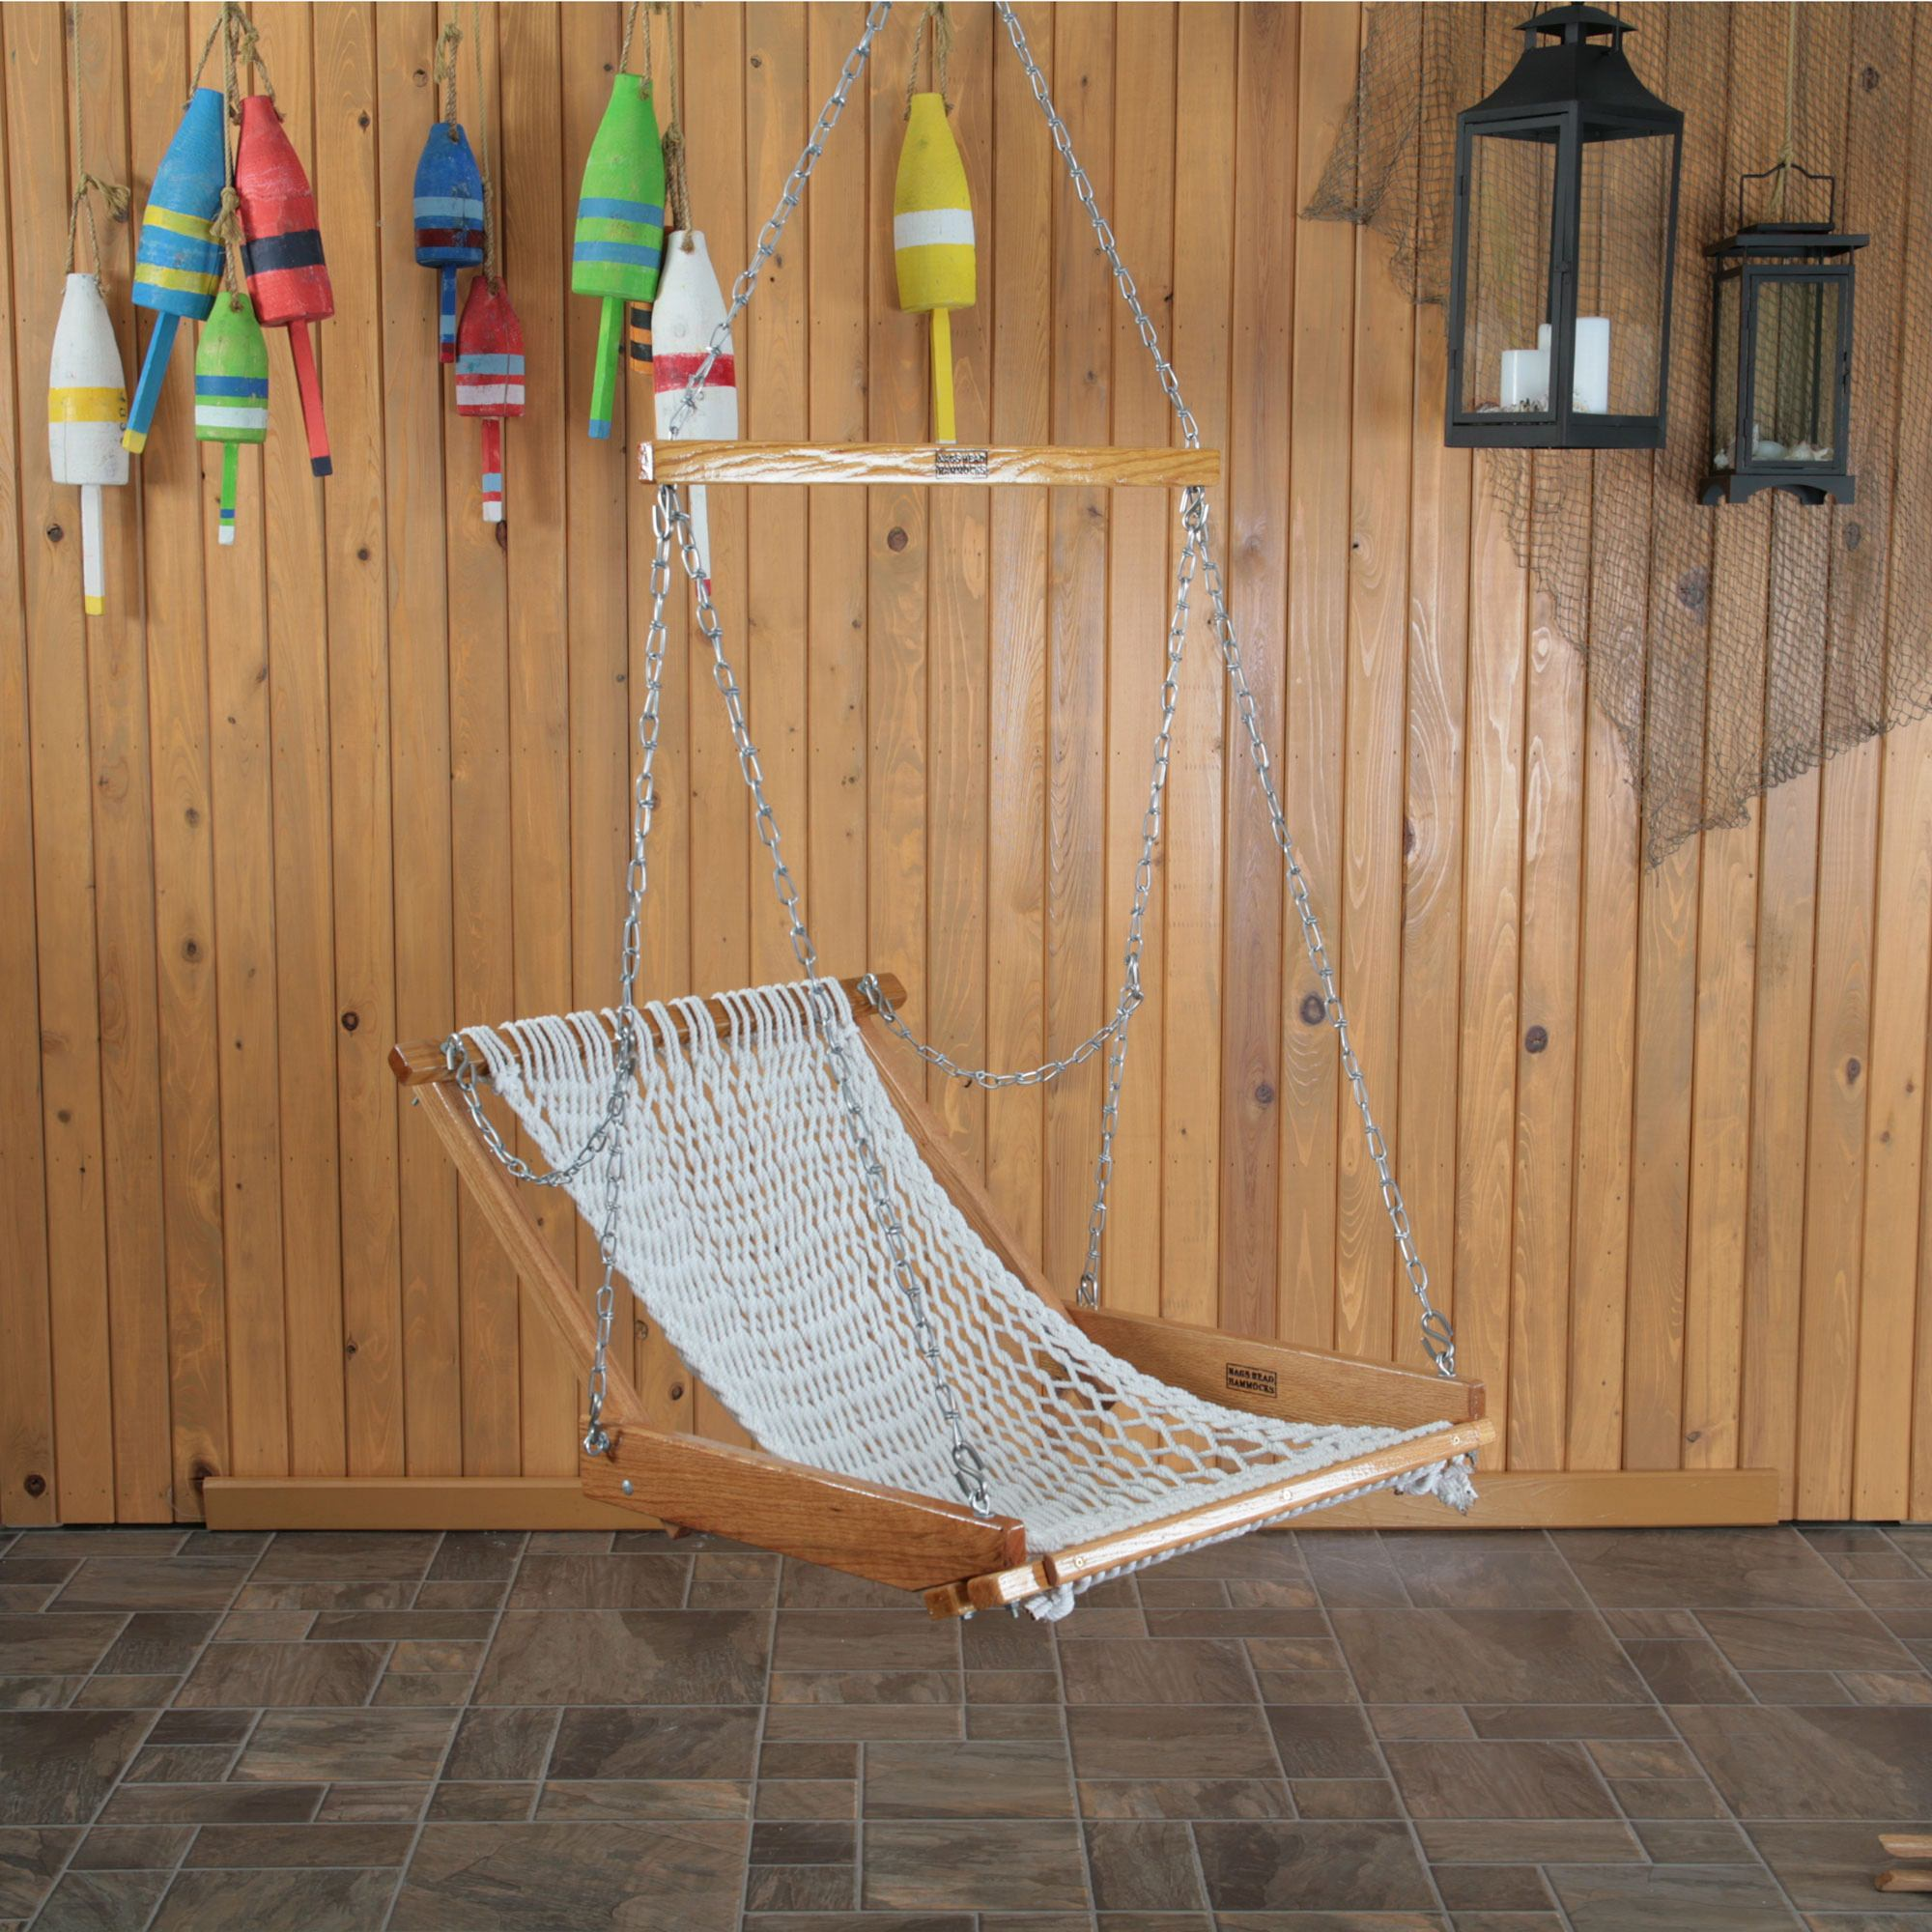 resin pad with bay seat benestuff swinging com wicker hammock swing fresh island saria design single chair